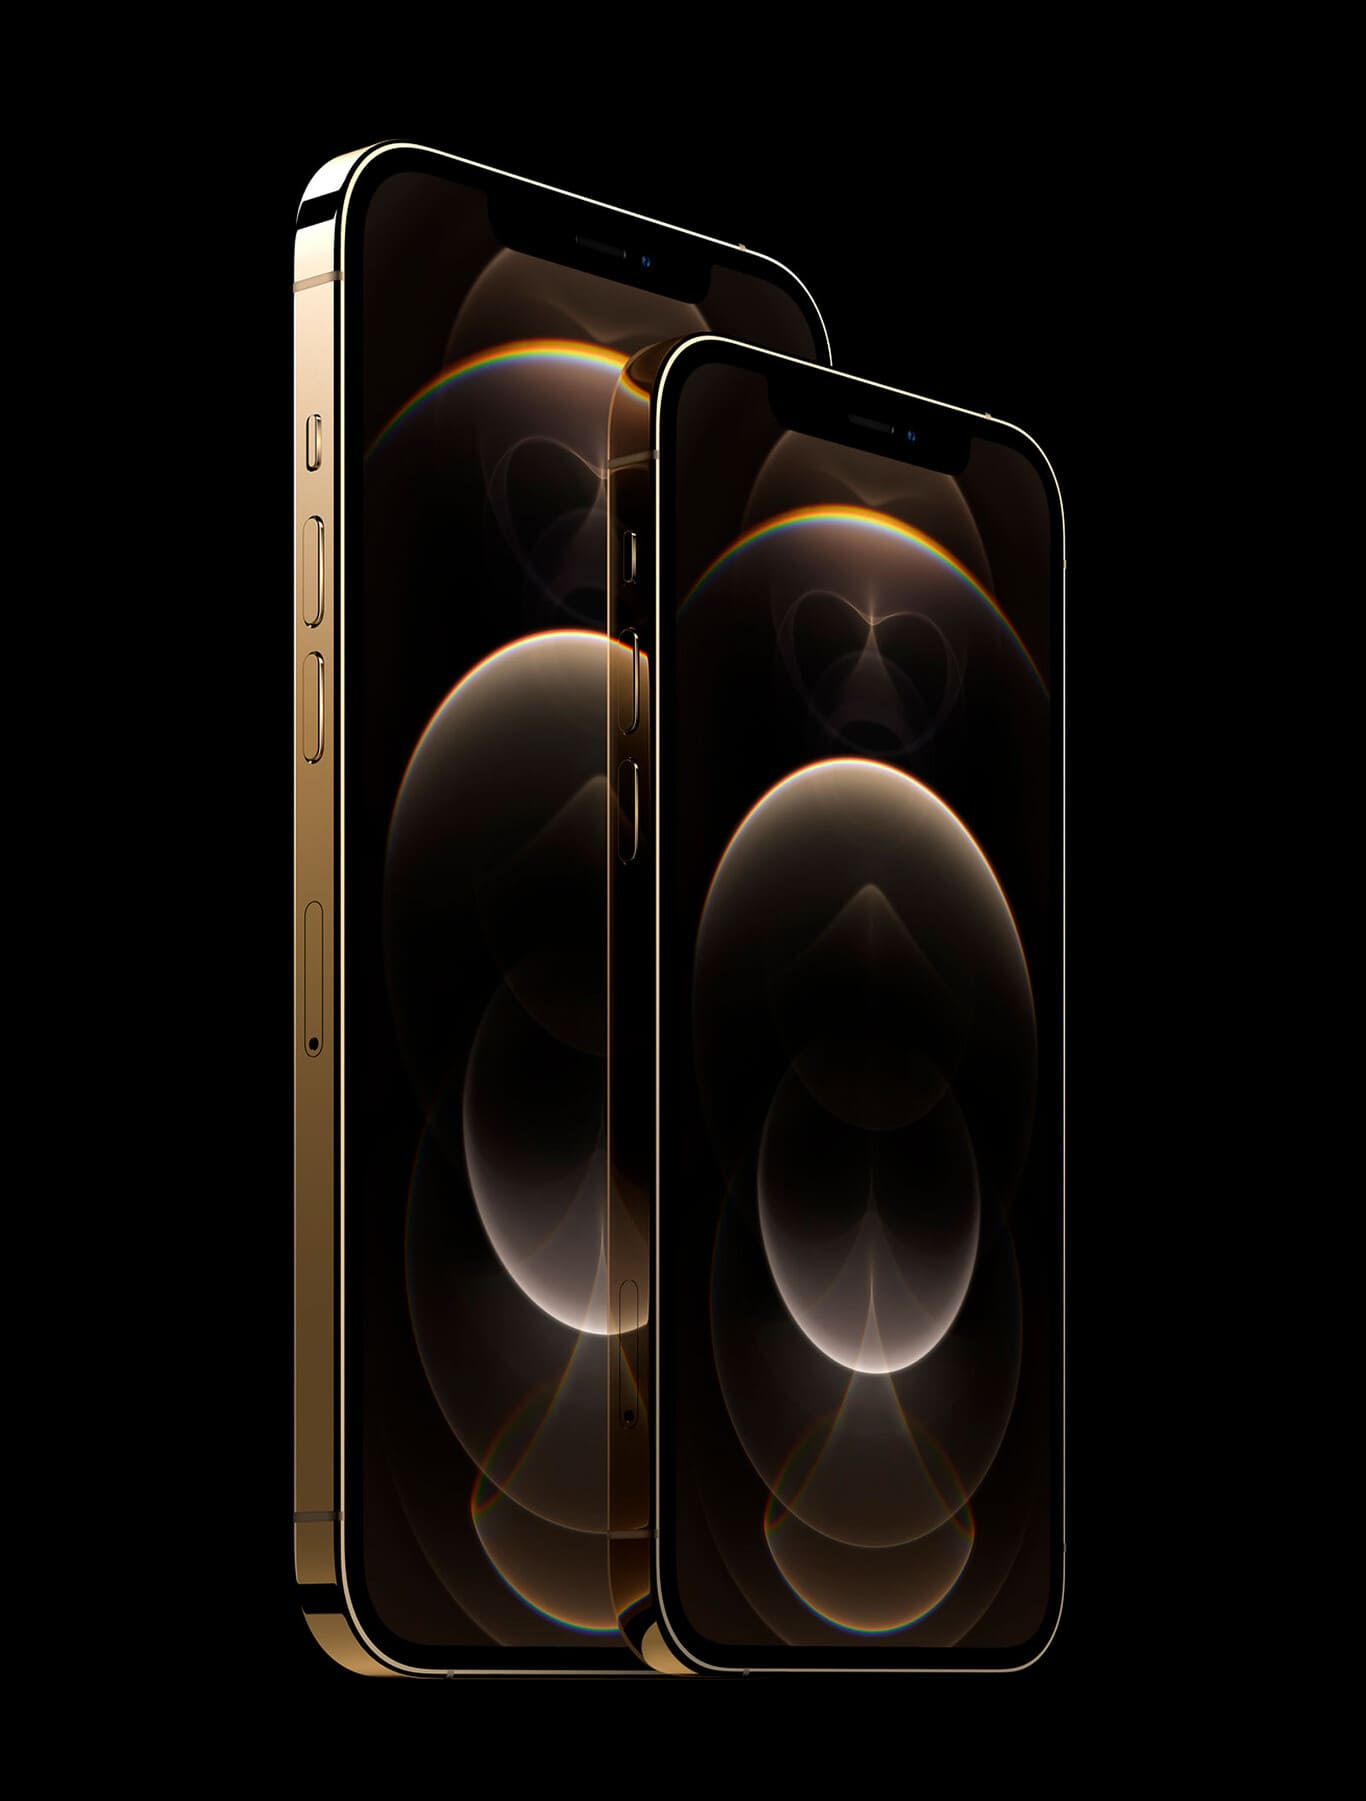 diseño-frontal-iPhone-12-Pro-y-iPhone-12-Pro-Max